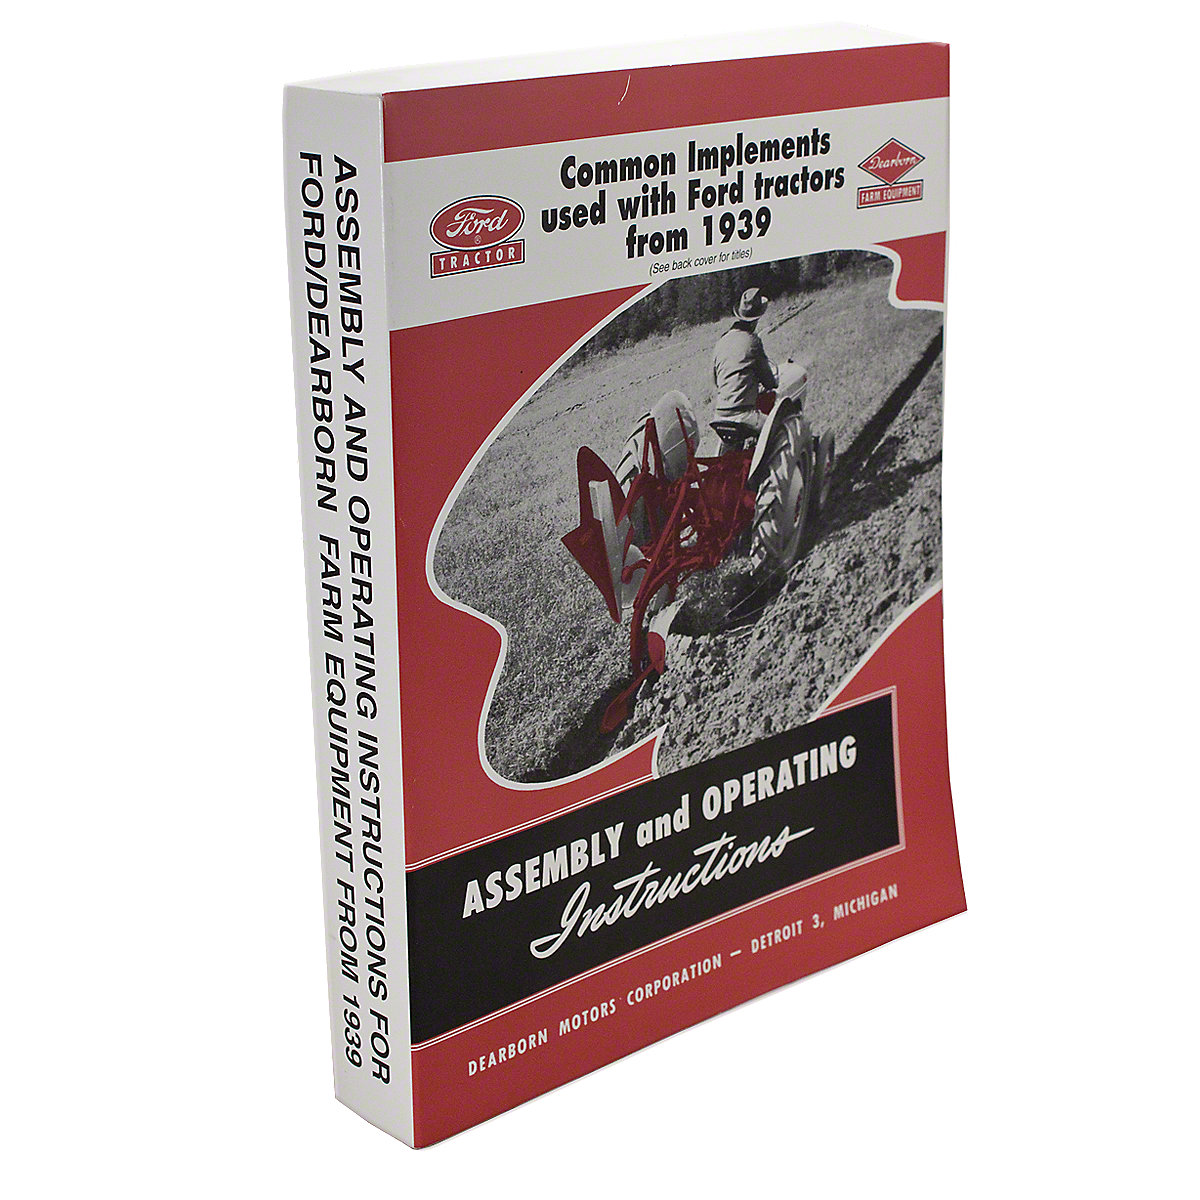 REP1342Assembly And Operating Instructions For Ford / Dearborn Farm Equipment From 1939 And Up